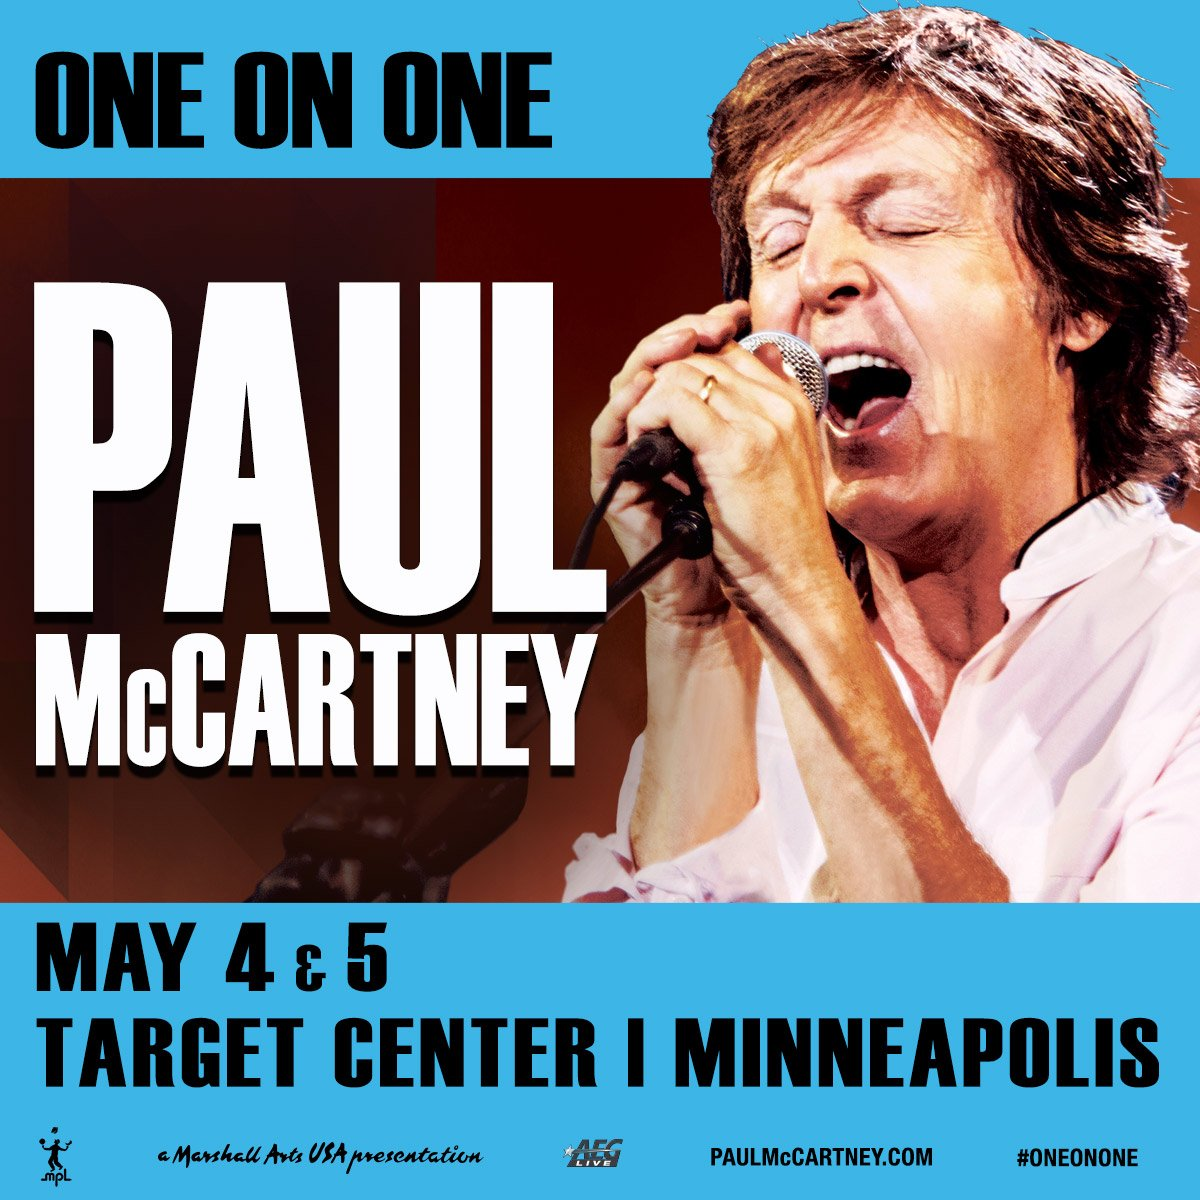 Sir Paul is coming to @TargetCenterMN May 4 & 5. RT for a chance to win two tix before they go on sale Monday @ 10. https://t.co/2jNHv8XhEh